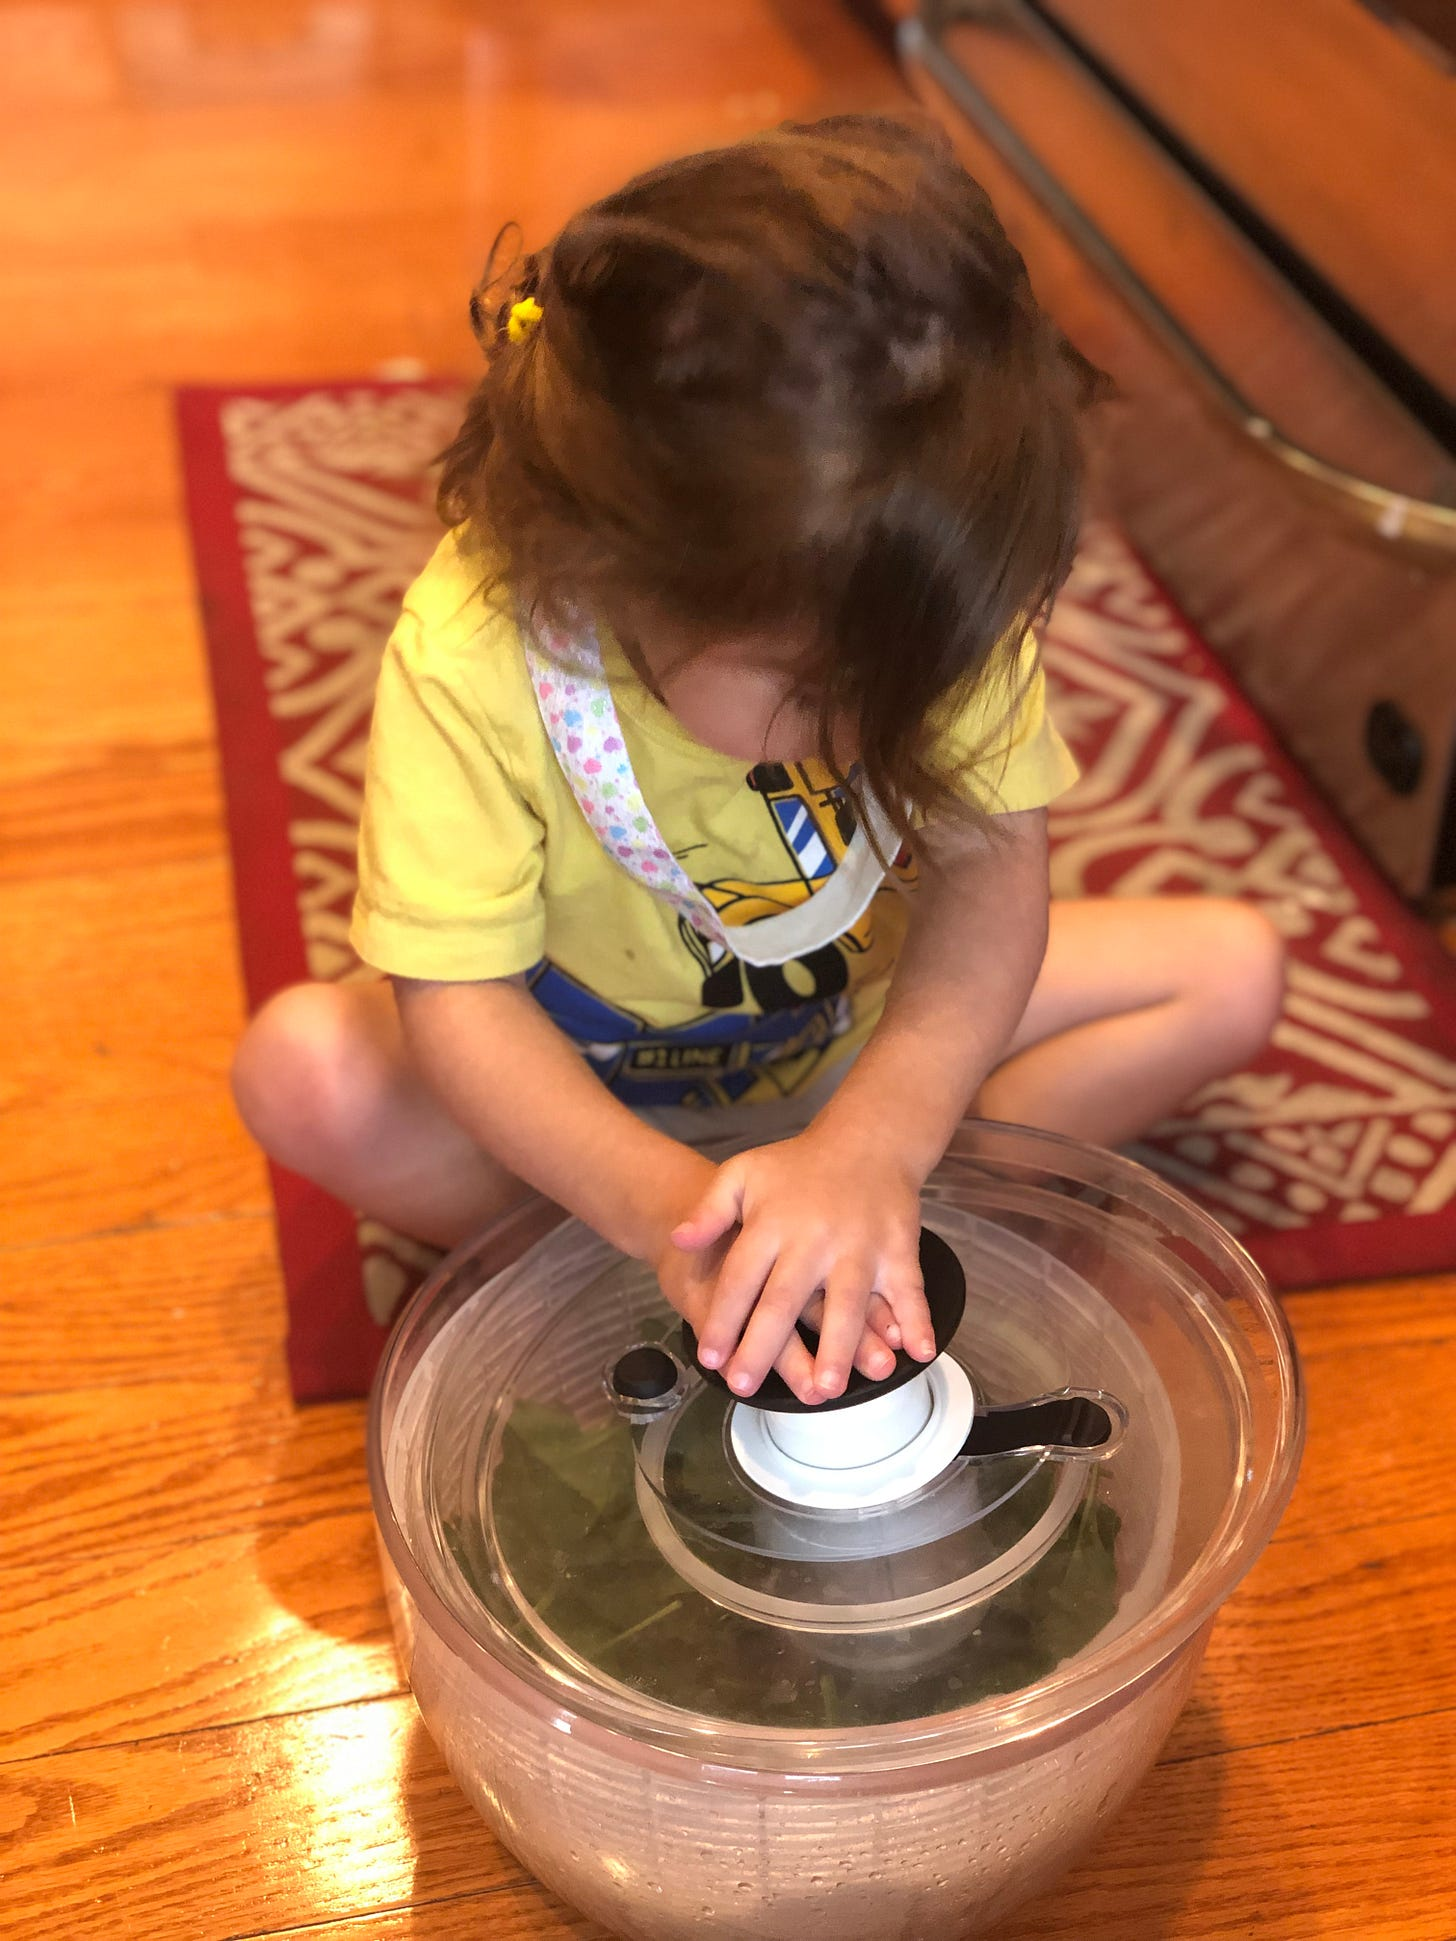 Photo of brown haired toddler pushing down on a salad spinner.